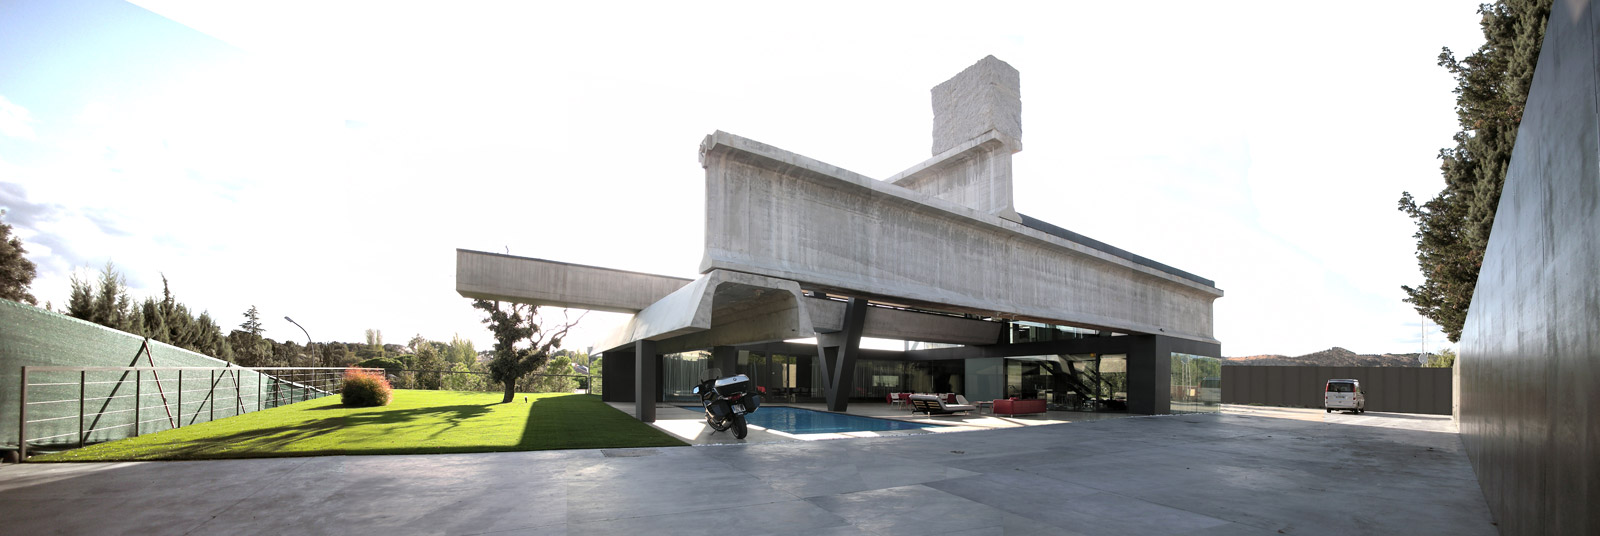 ShowCase: Hemeroscopium House | Features | Archinect